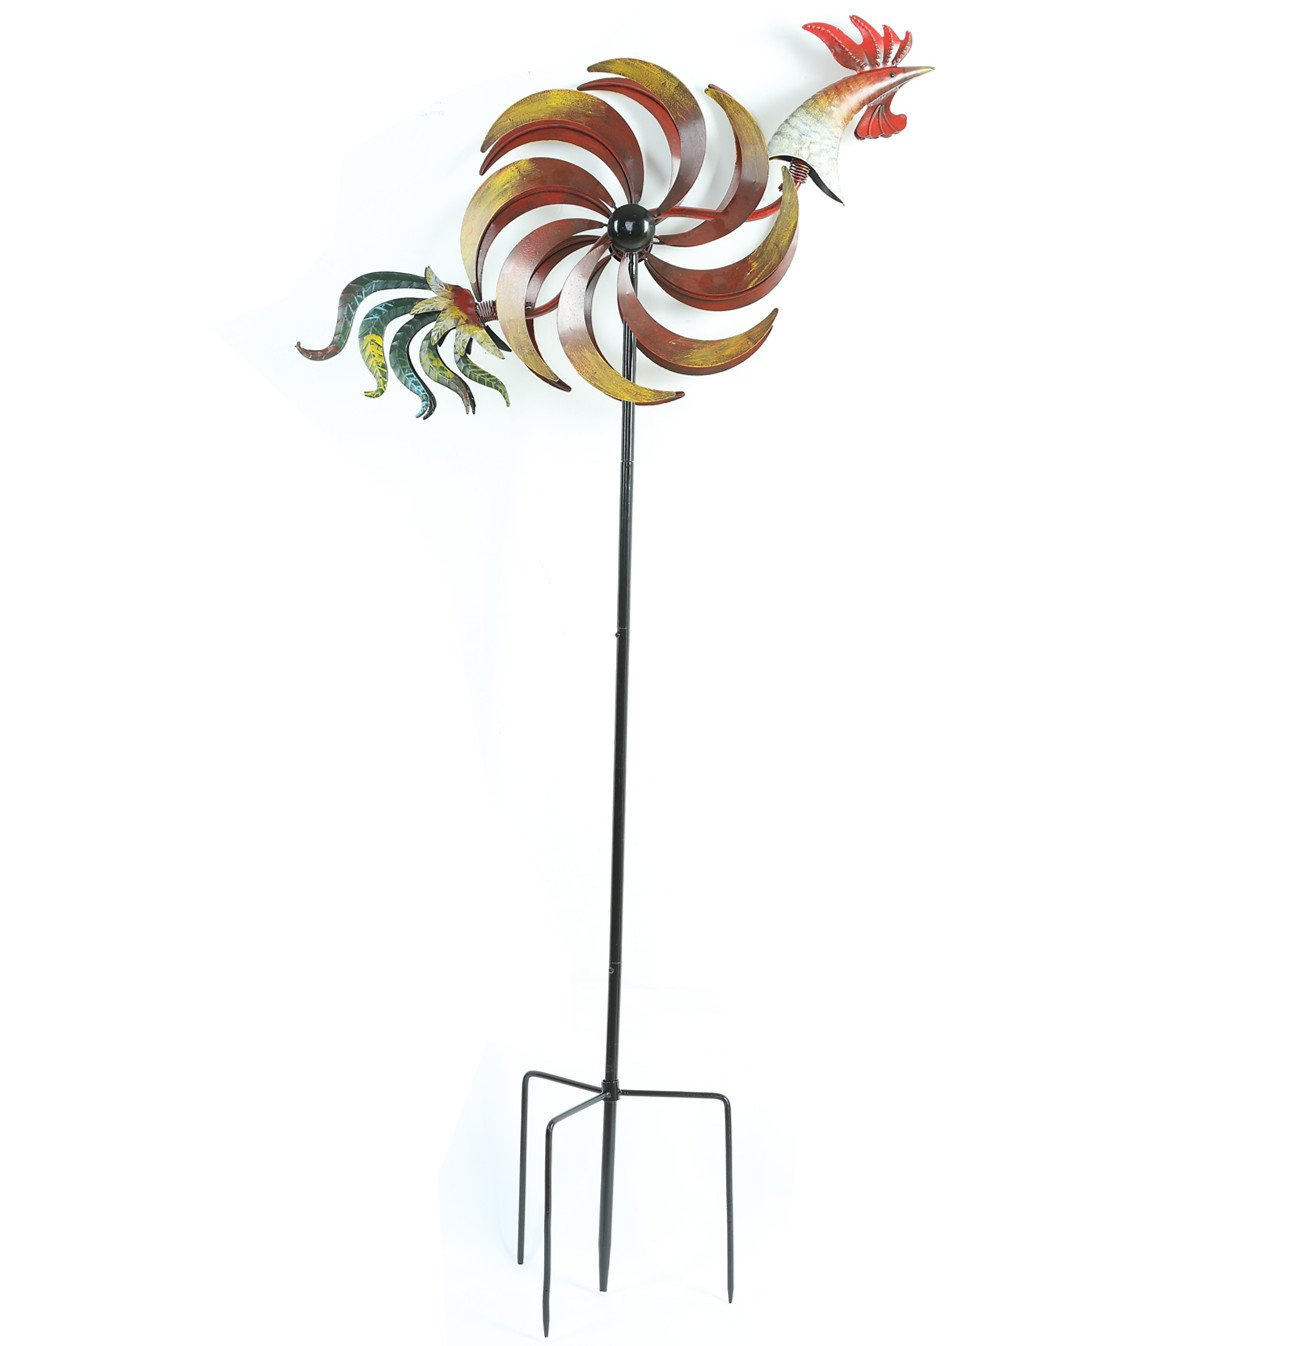 CEDAR HOME Wind Spinner Twirler Sculpture Garden Stake Outdoor Metal Stick Art Ornament Flaming Rooster Figurine Decor for Lawn Yard Patio, 31'' W x 7'' D x 64'' H